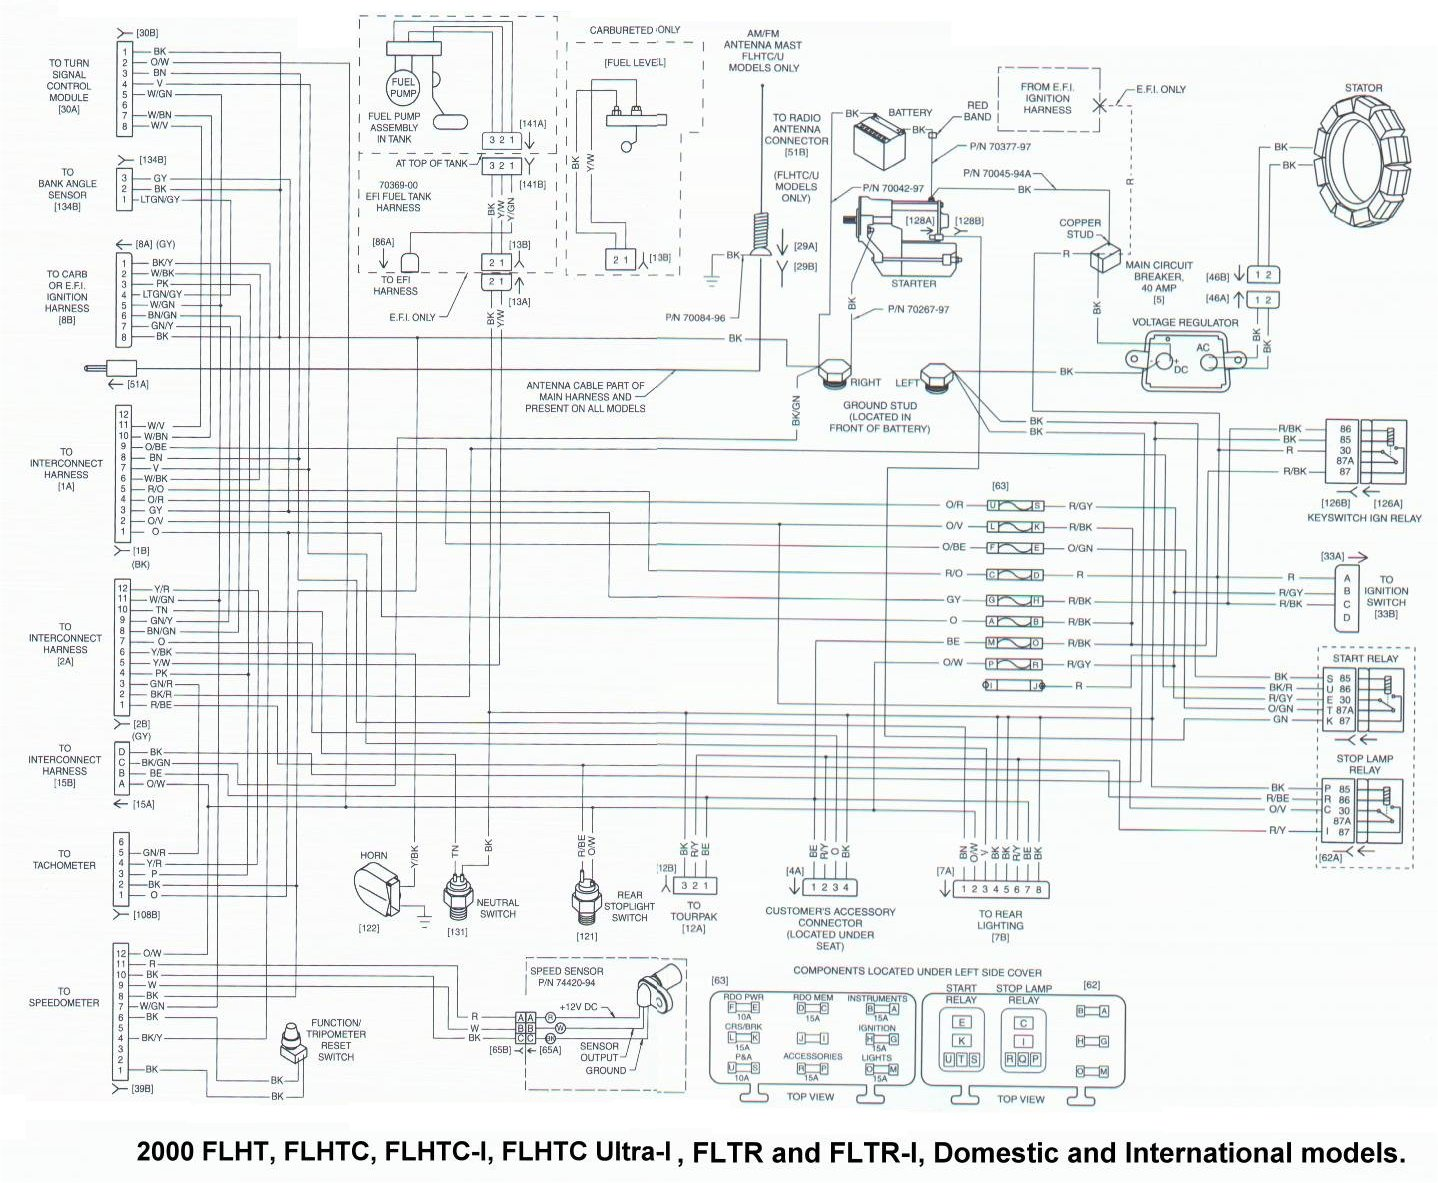 1984 Pontiac Grand Prix Wiring Diagram Harley Davidson Radio Harness